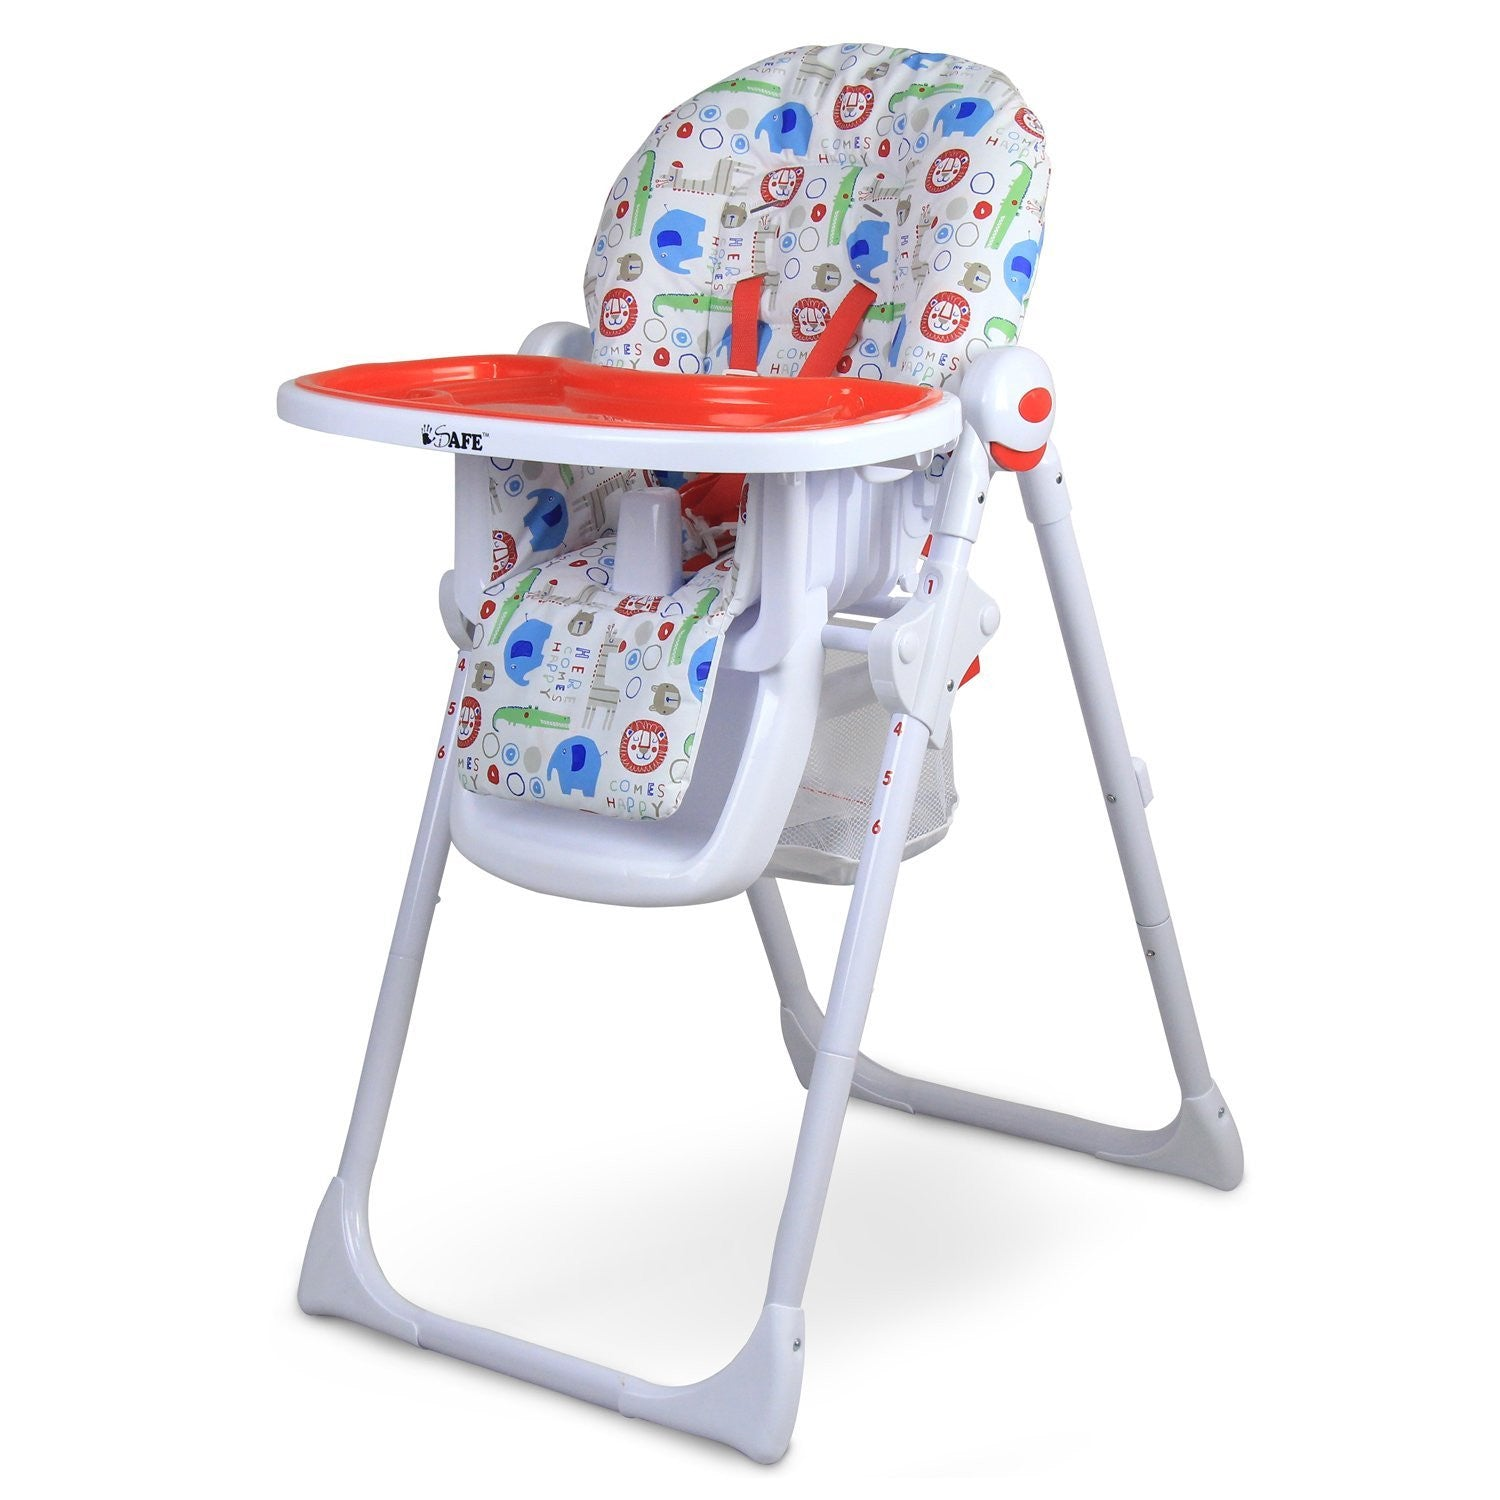 Wel e To Baby Travel LTD Exclusive British Designer And